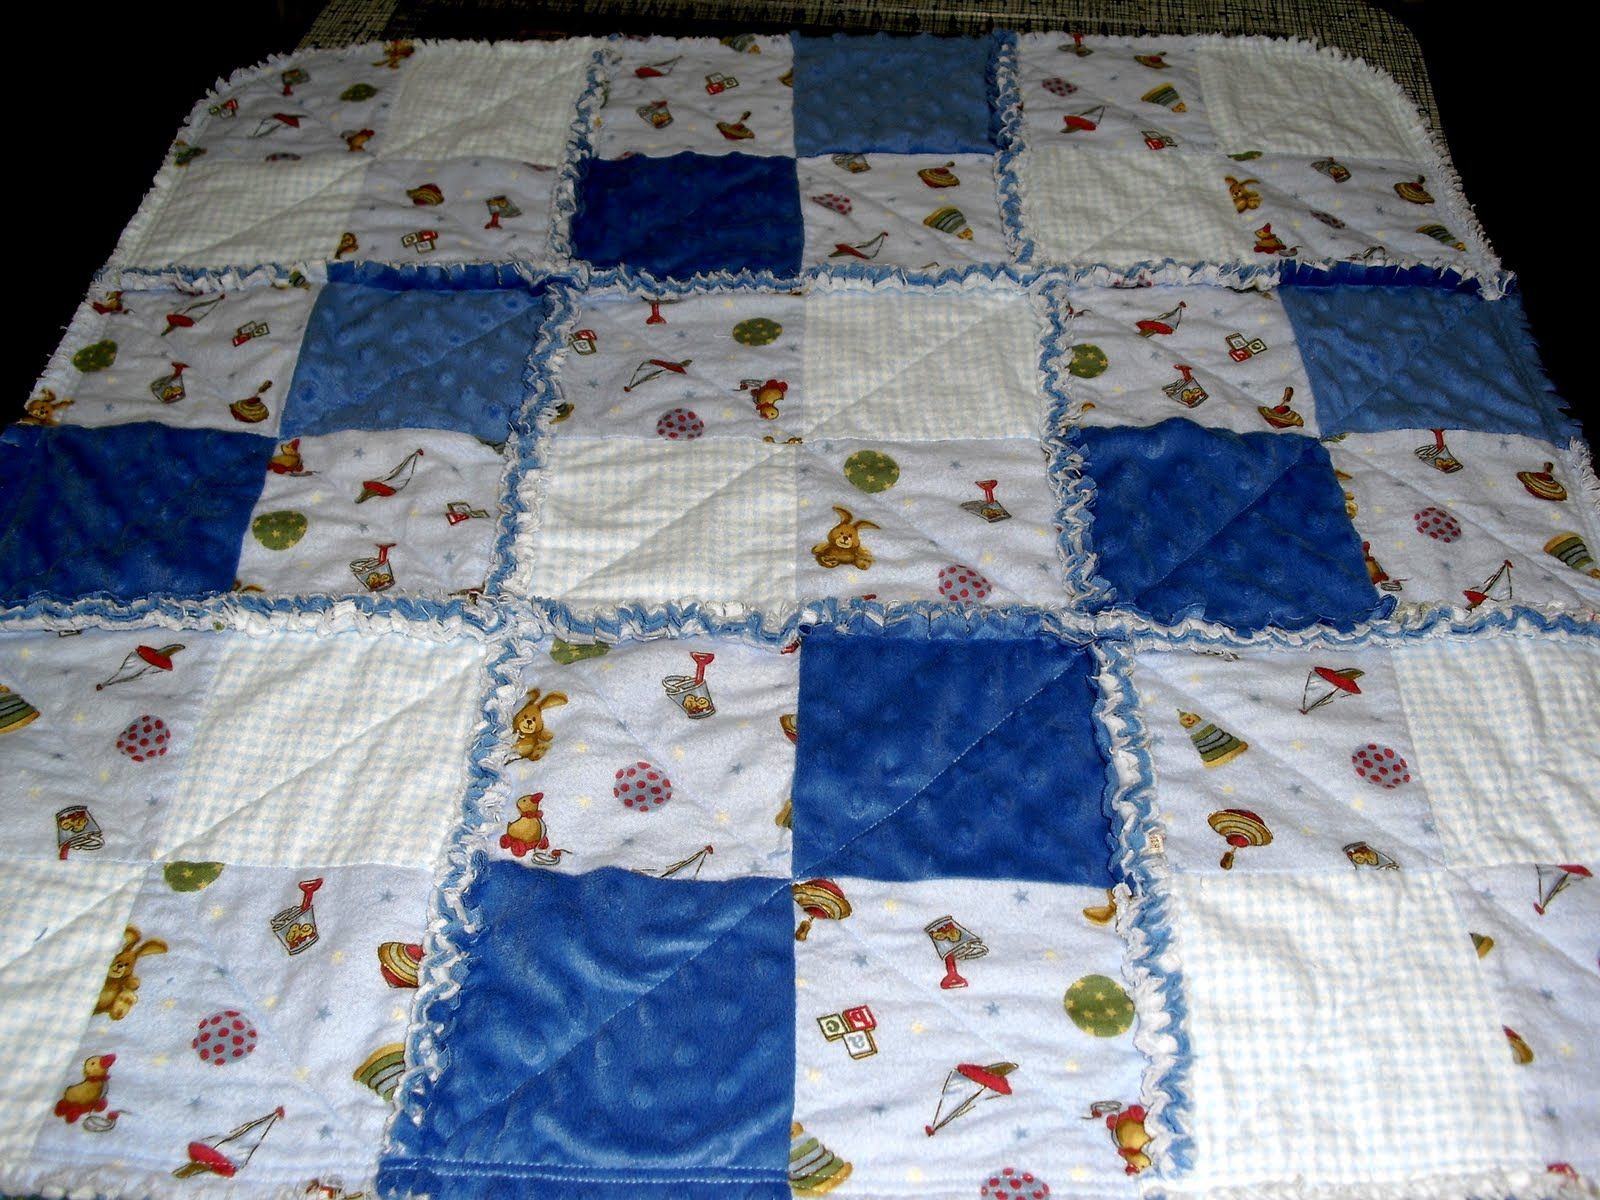 Up the Rainbow Creek: Super Quick Baby Rag Quilt | Things I've ... : baby rag quilts instructions - Adamdwight.com